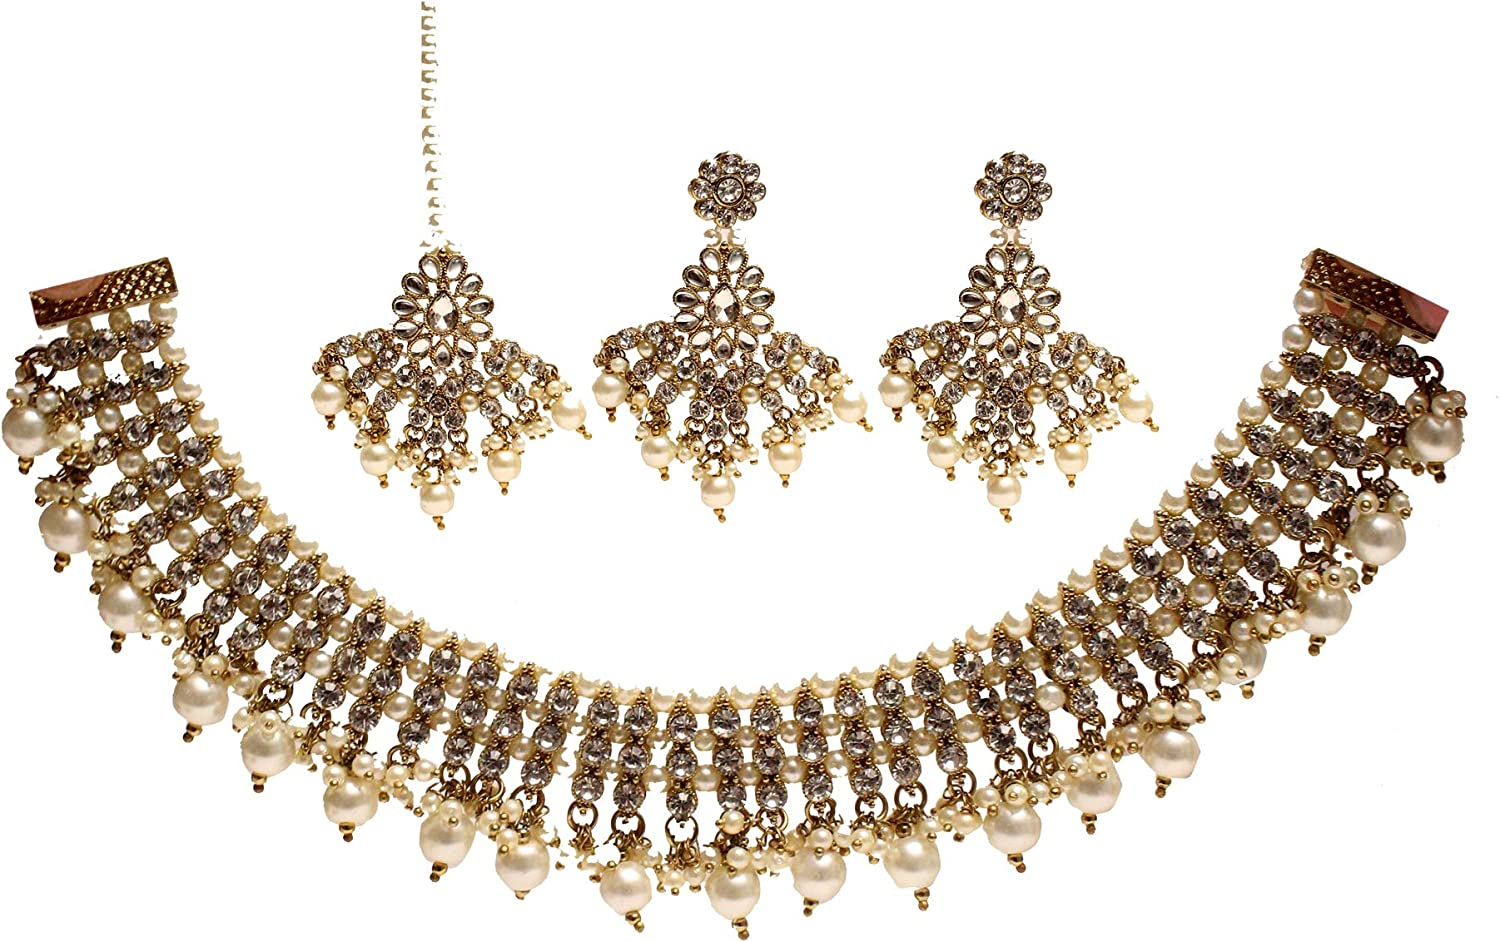 Glamorous Collection Max 86% OFF Gold Tucson Mall Necklace Set Jewelry Wed Bridal Indian